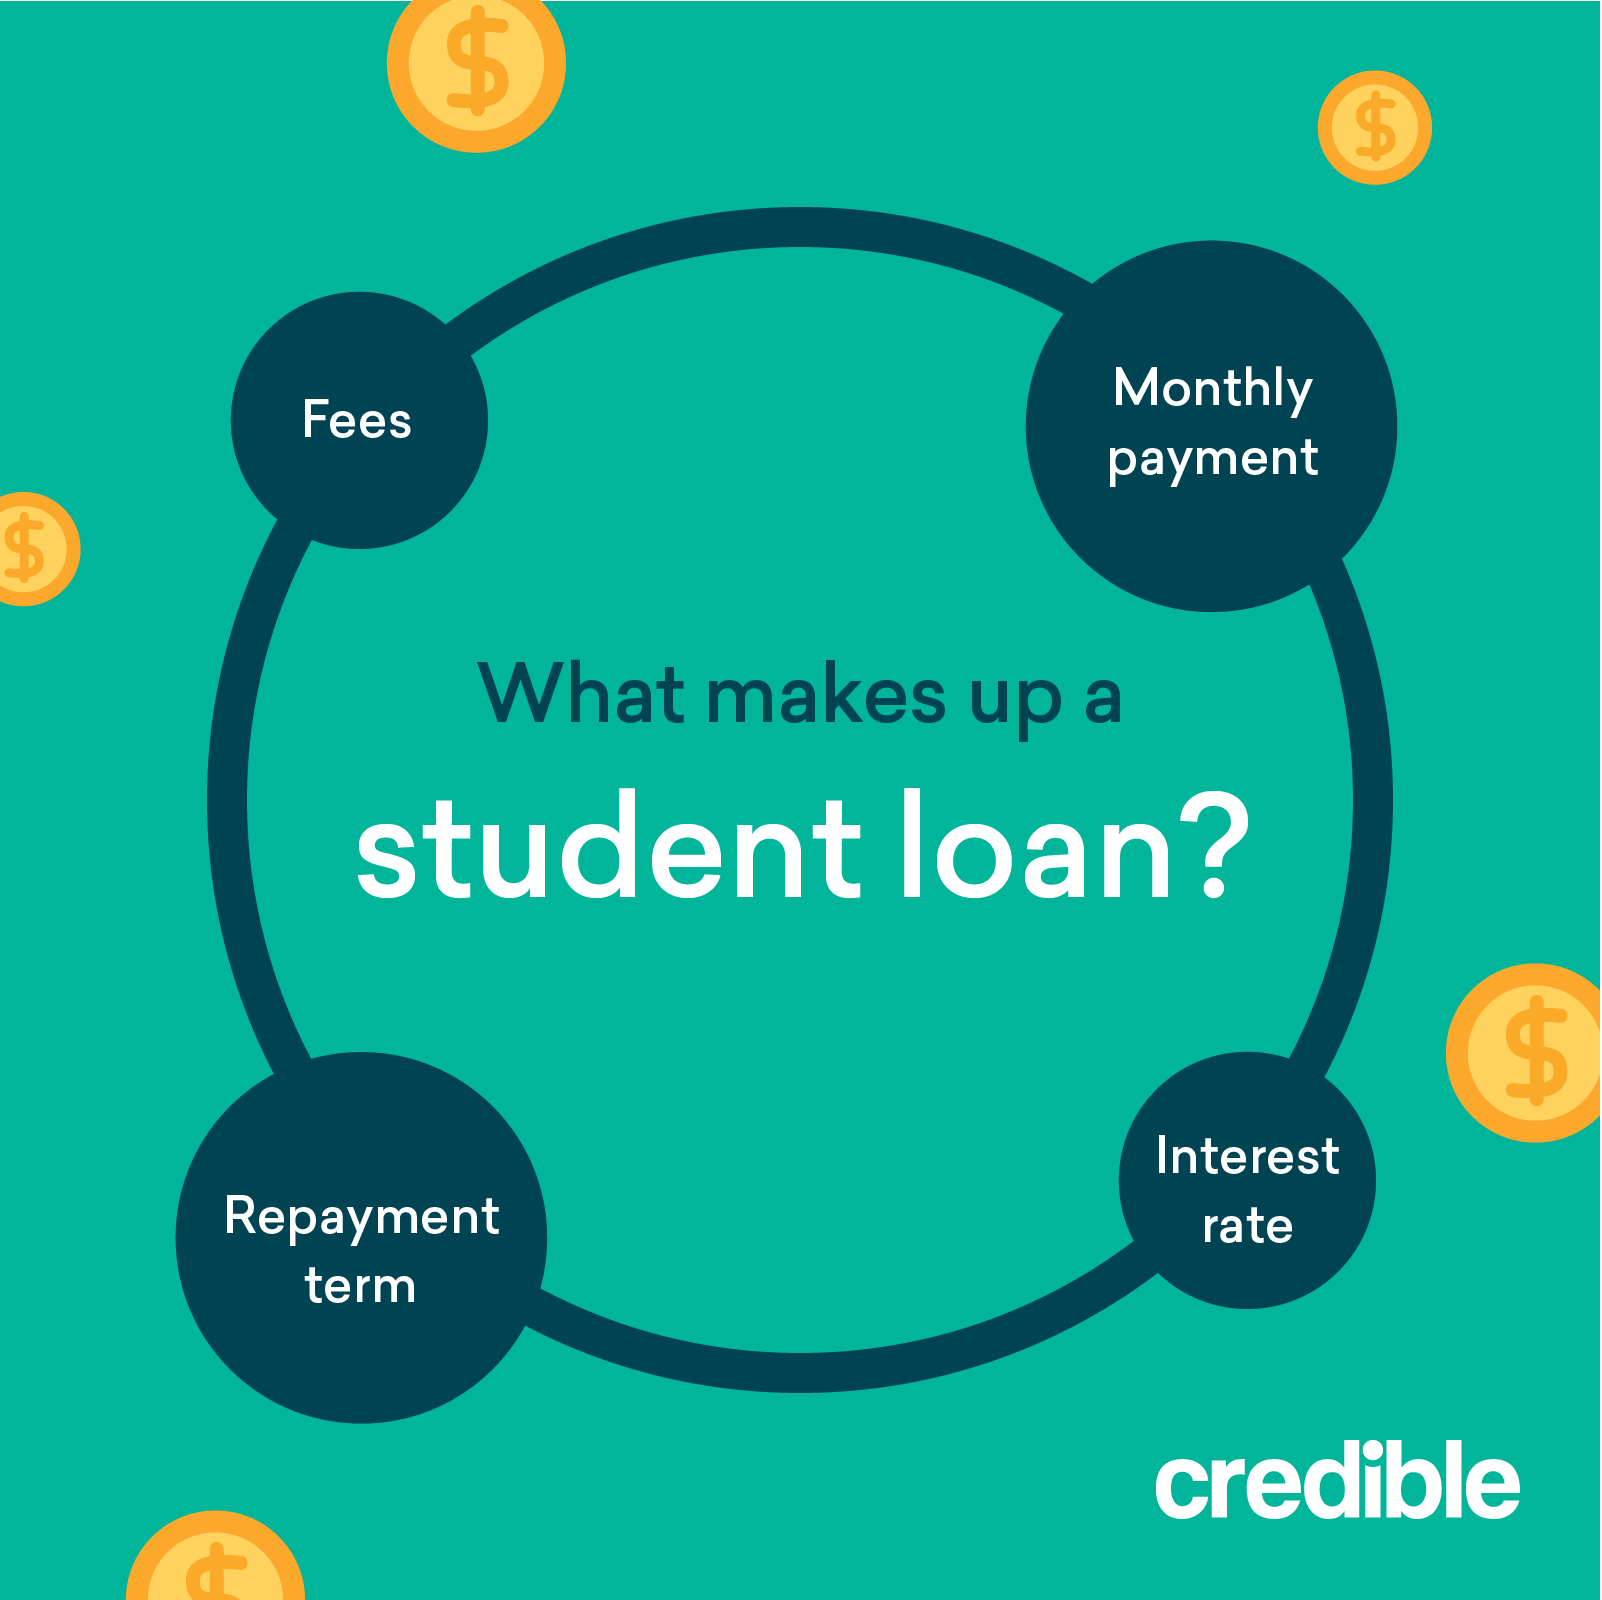 what makes up a student loan?